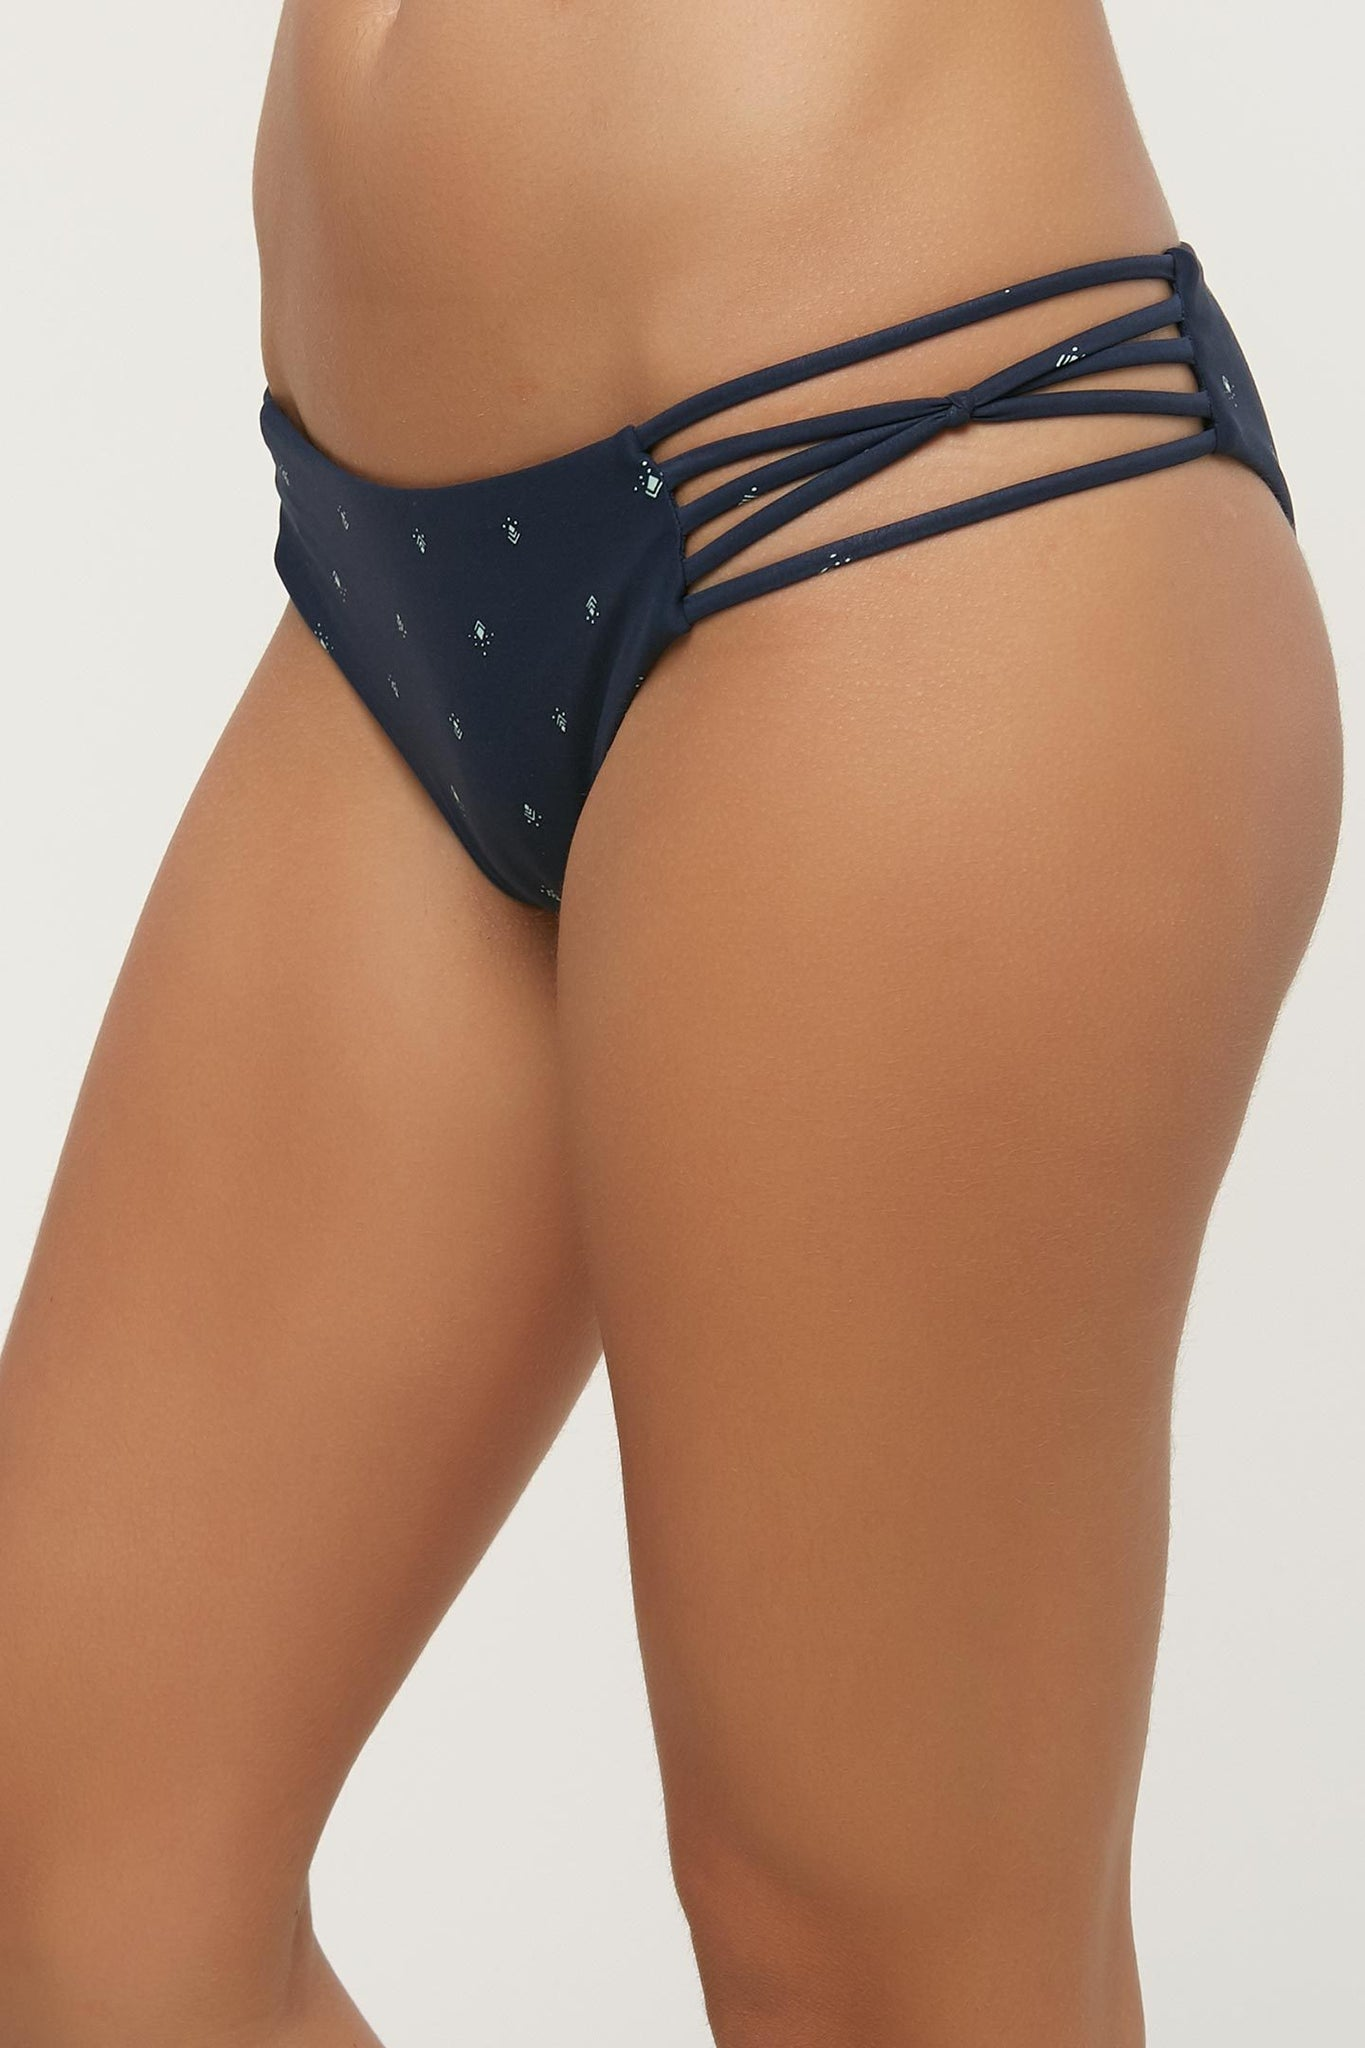 Tribal Tracker Strappy Hipster Bottoms | O'Neill Clothing USA